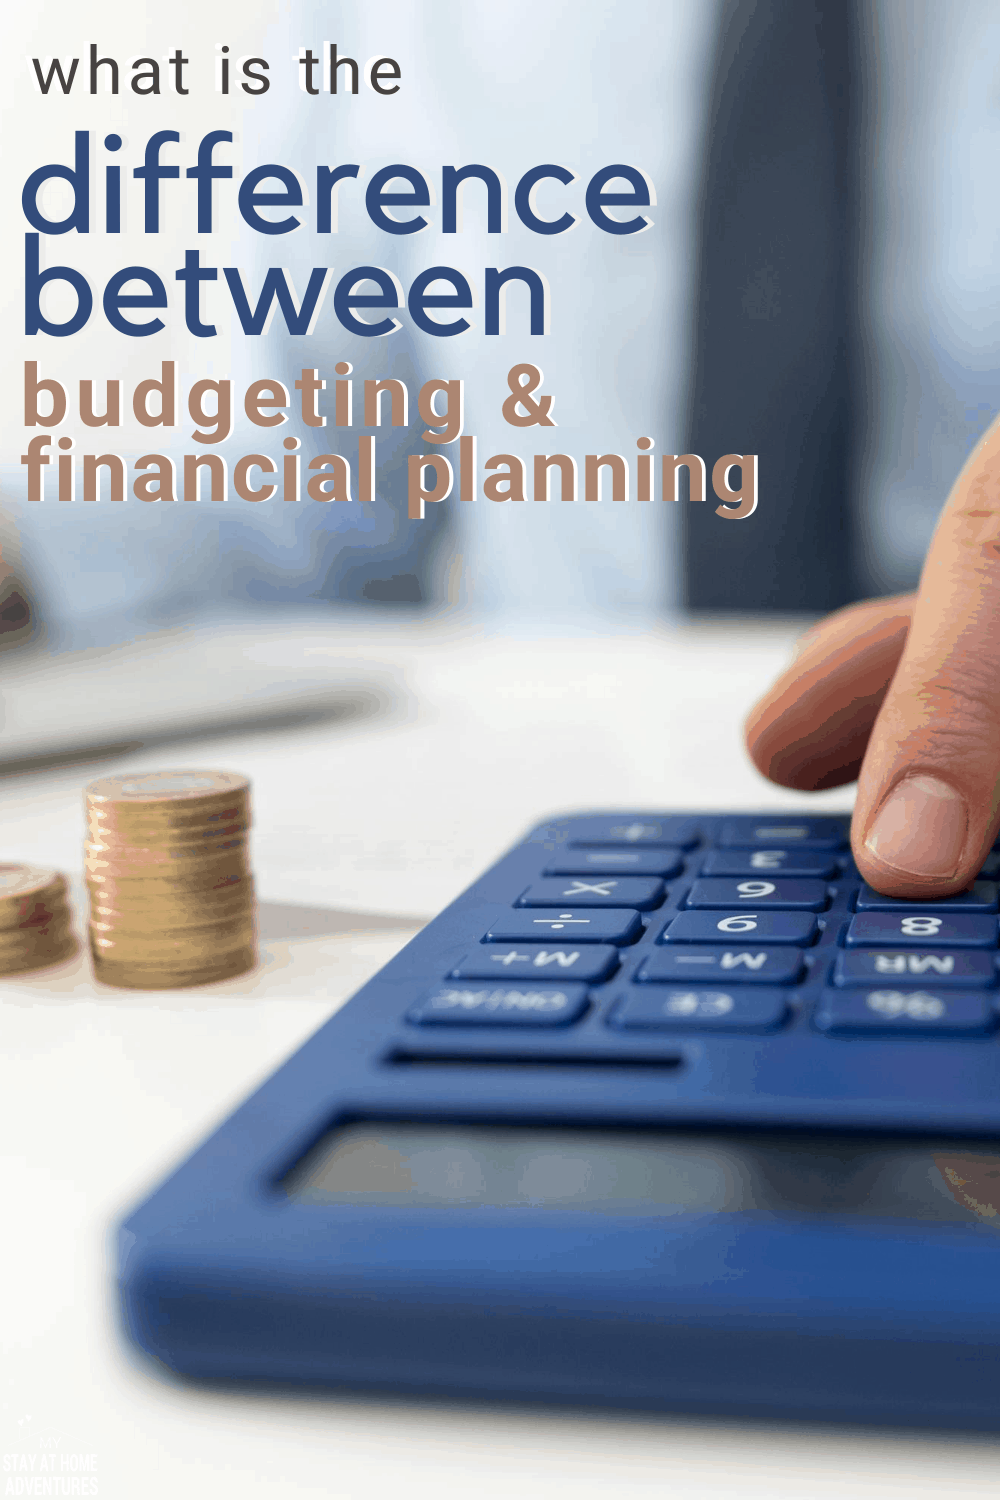 Budgeting and financial planning we hear about these terms but what makes them different and why are they important. #budgeting #beginningbudgeting #mommyfinances via @mystayathome